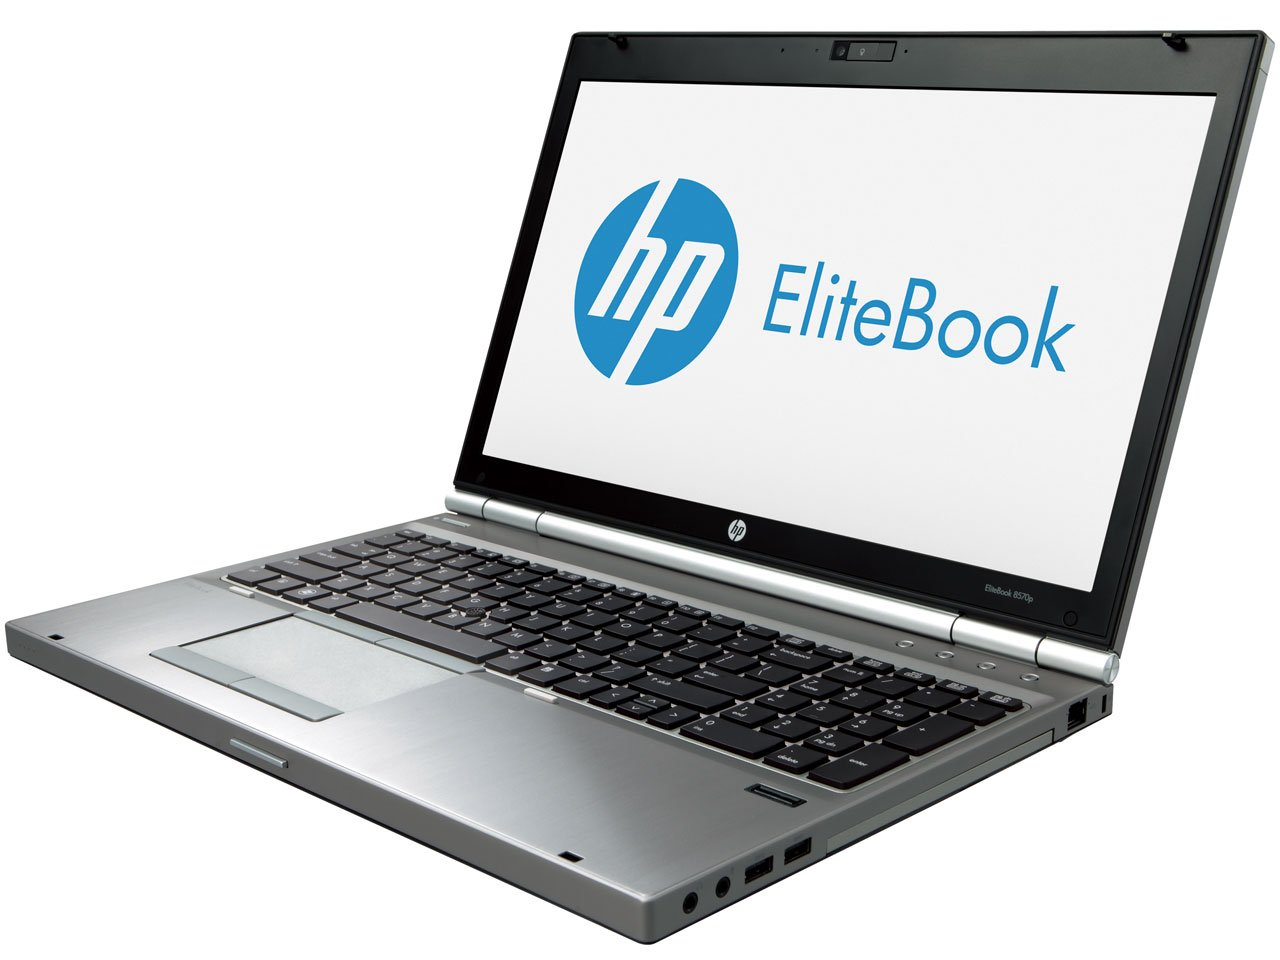 Amazon.com: HP EliteBook 8570P 15.6 Inch Business High Performance Laptop  Computer(Intel Core i5 3320M 2.6G,8G RAM DDR3,240G SSD,DVD-ROM ,Windows 10  ...